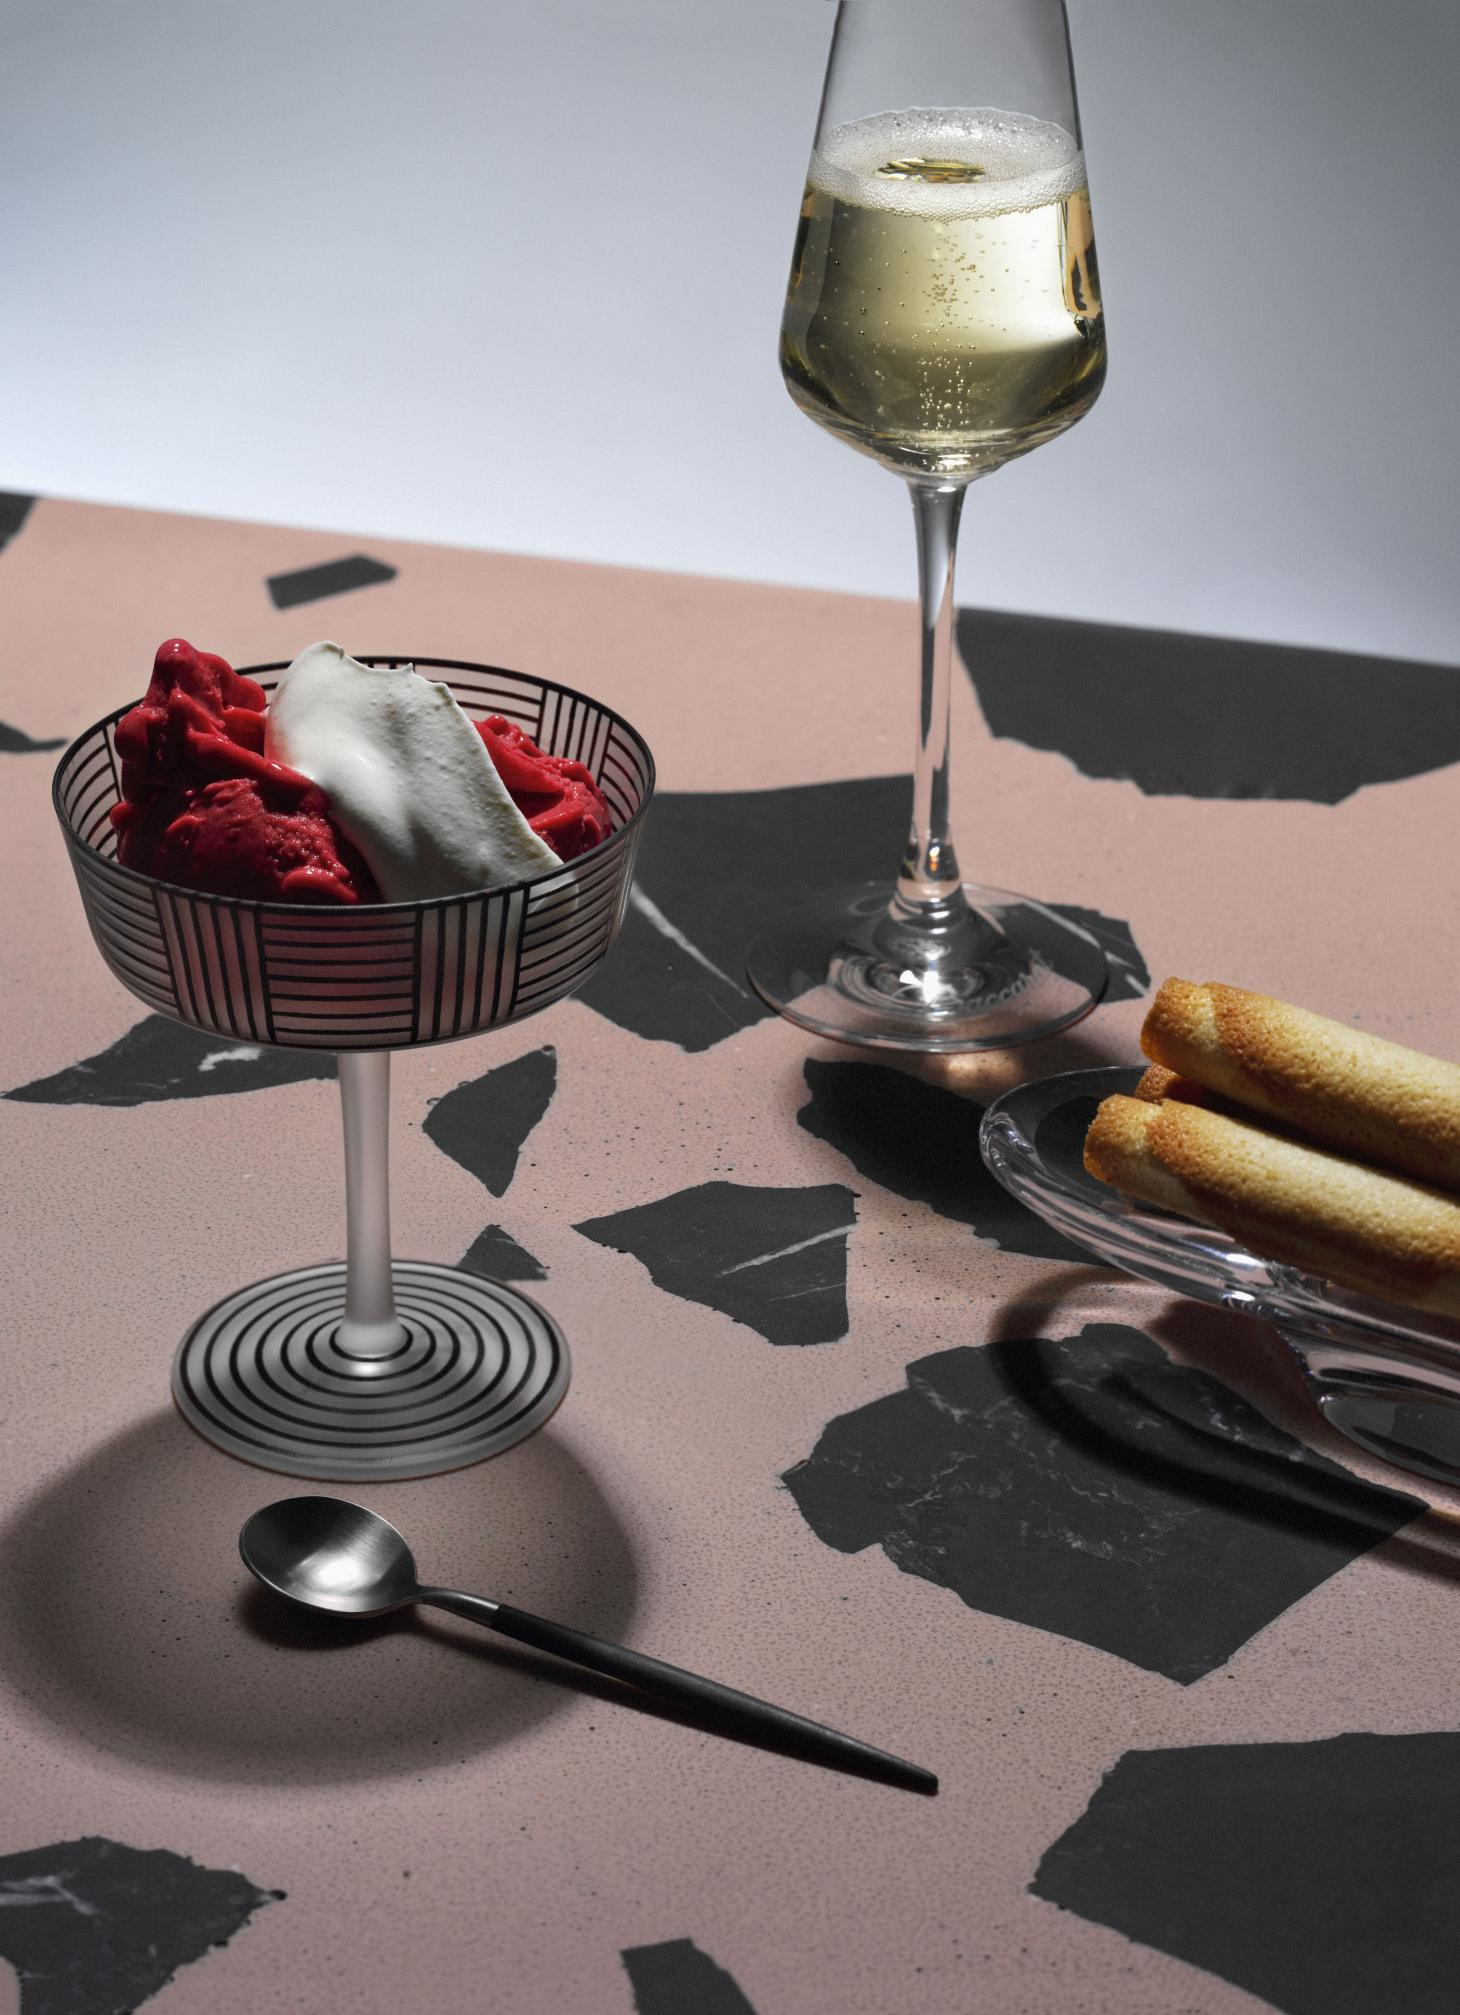 raspberry sorbet and gelato in glass cup on pink countertop next to glass of champagne